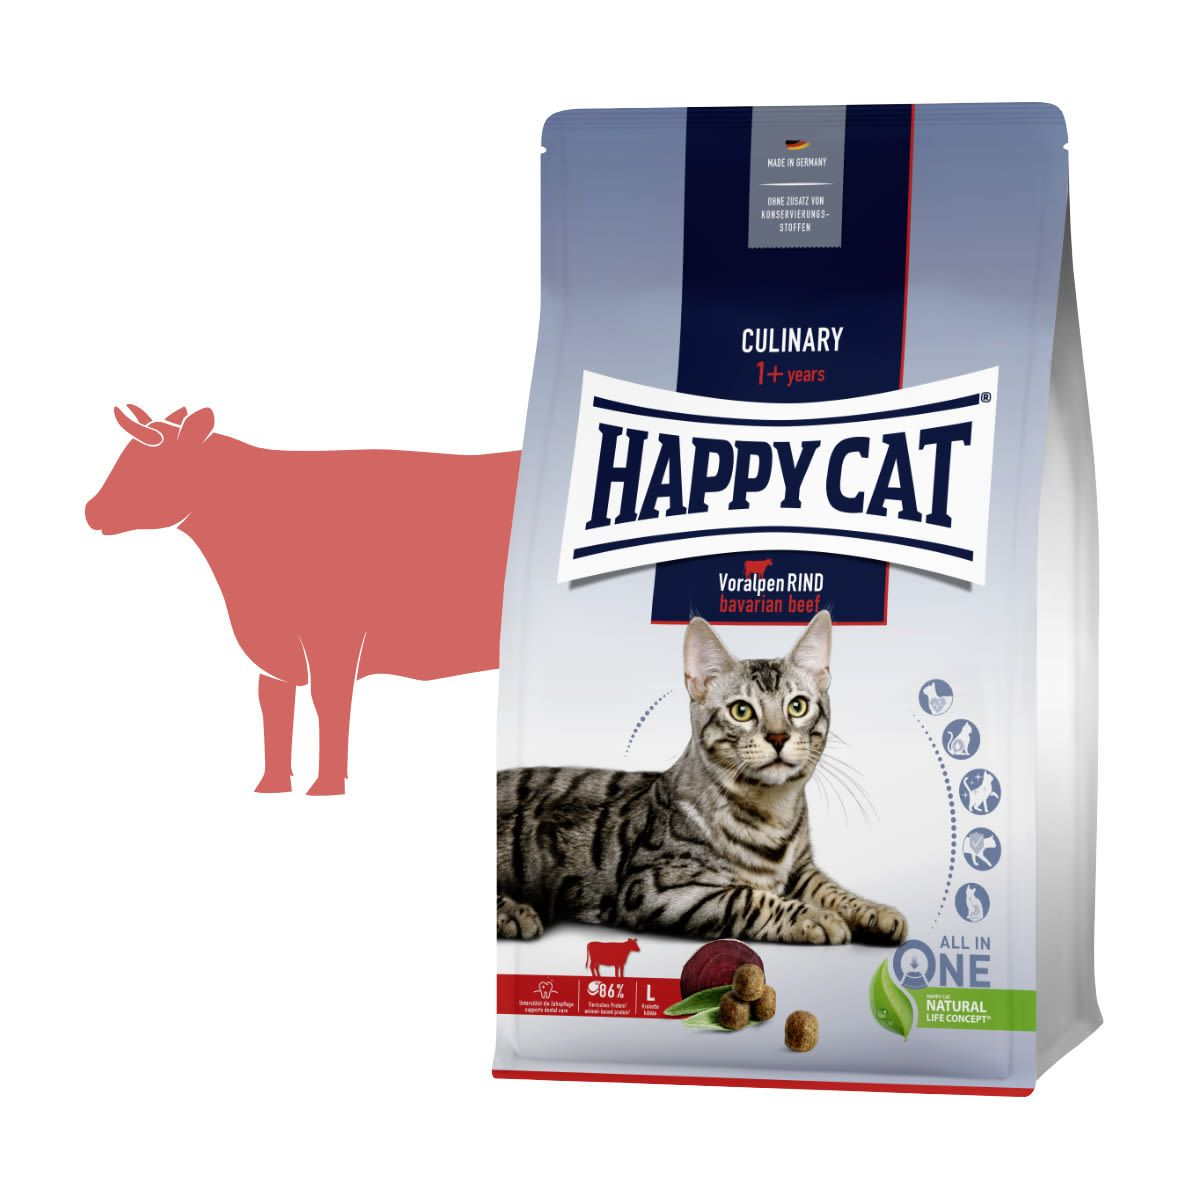 HAPPY CAT ADULT Culinary Voralpen-Rind 1,3kg